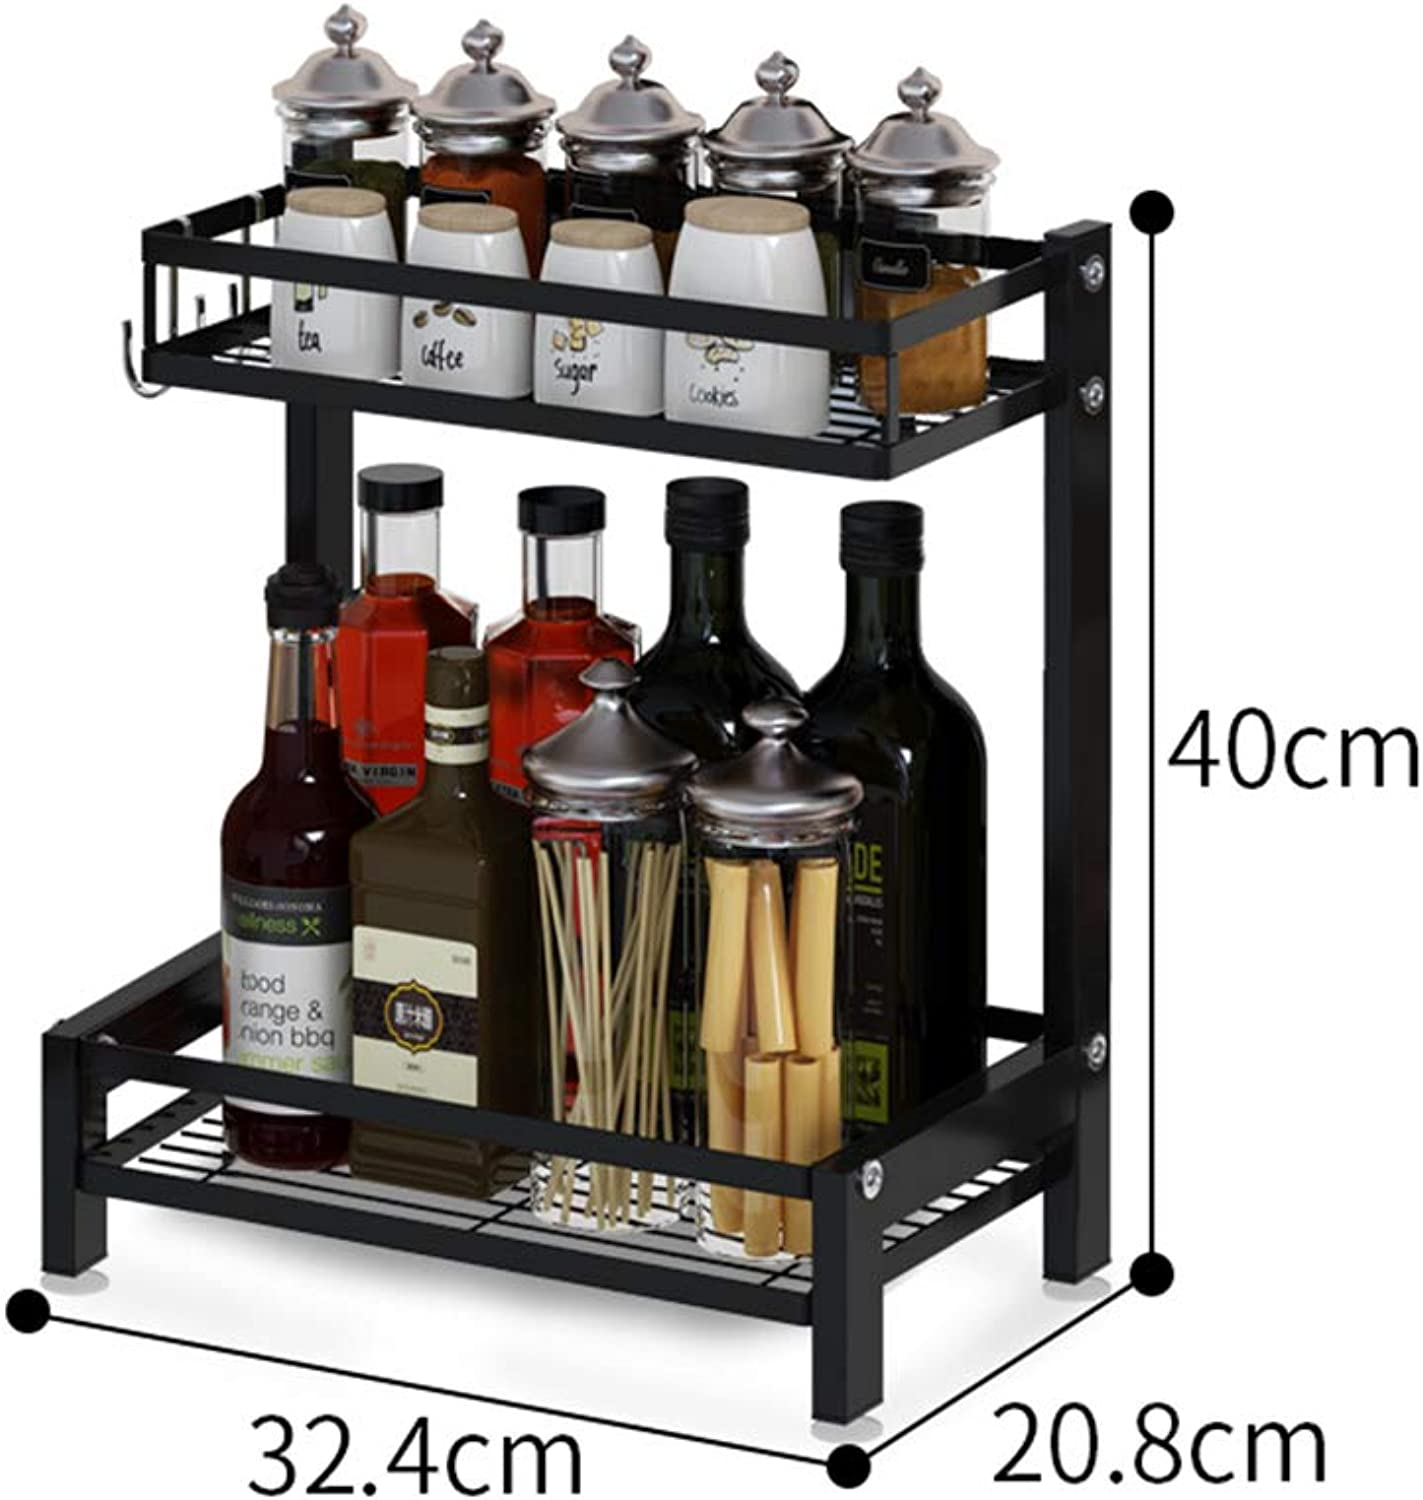 2-Tier Kitchen Countertop Organizer Holder,Stainless Steel Kitchen Racks Rack for Spice Jar, Can, Bottle and More (Size   A)